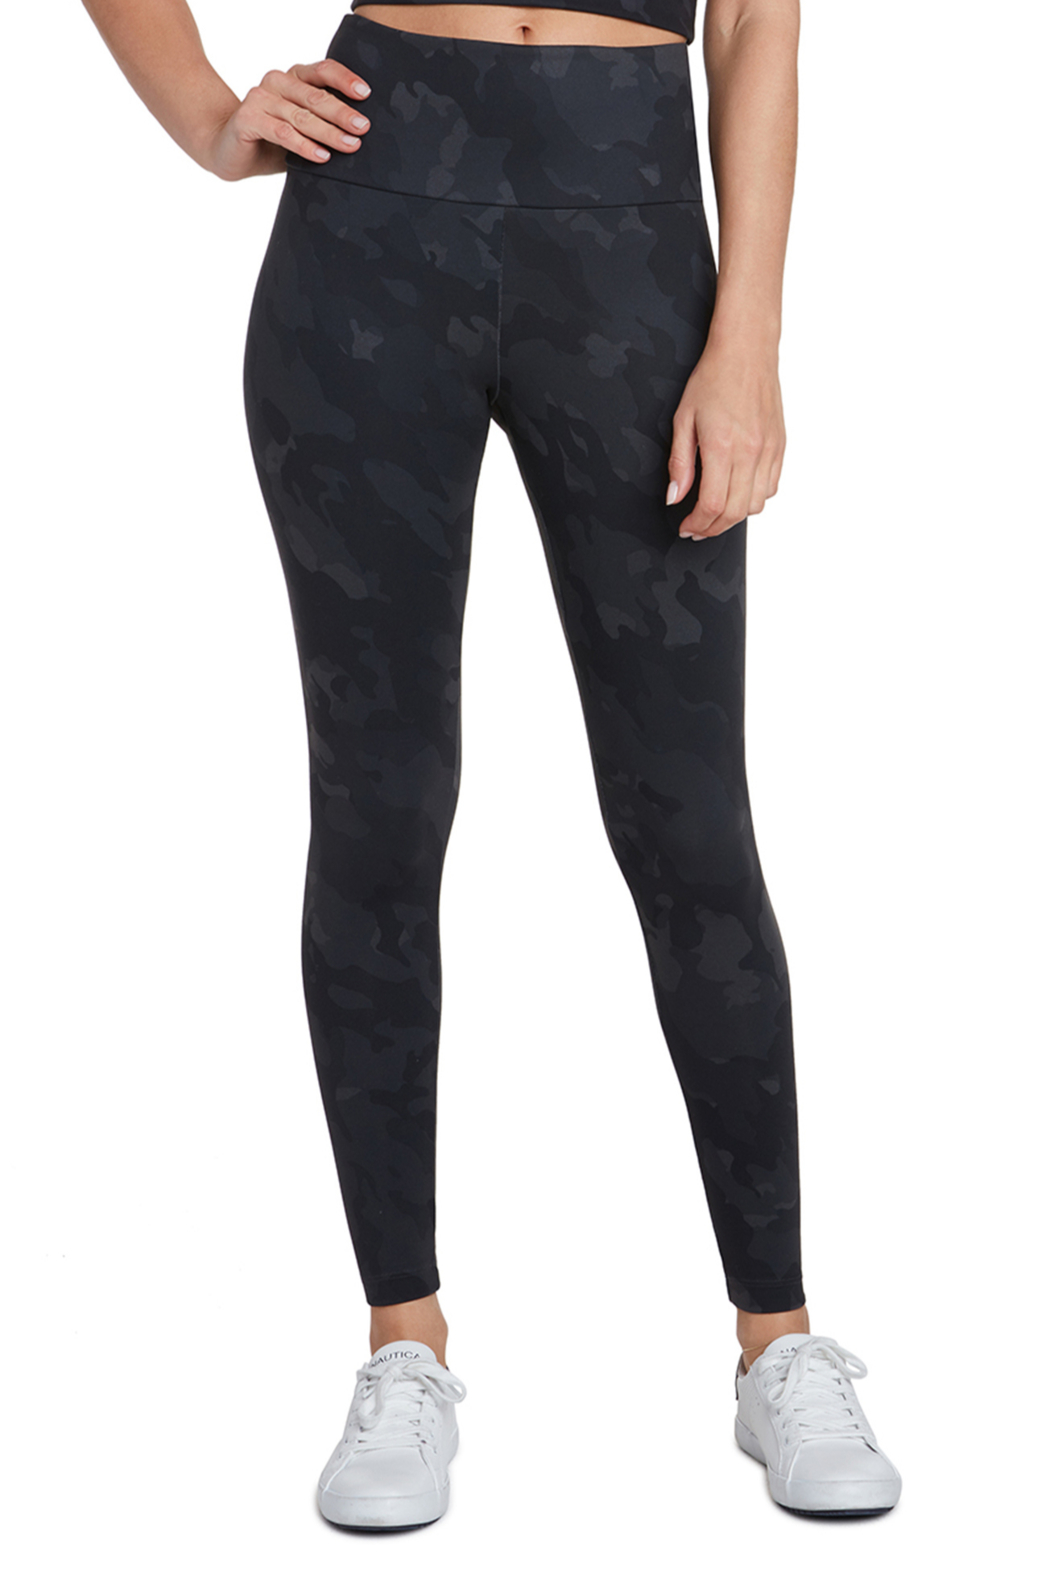 Search for Sanity Hi Waist Camo Leggings - Main Image